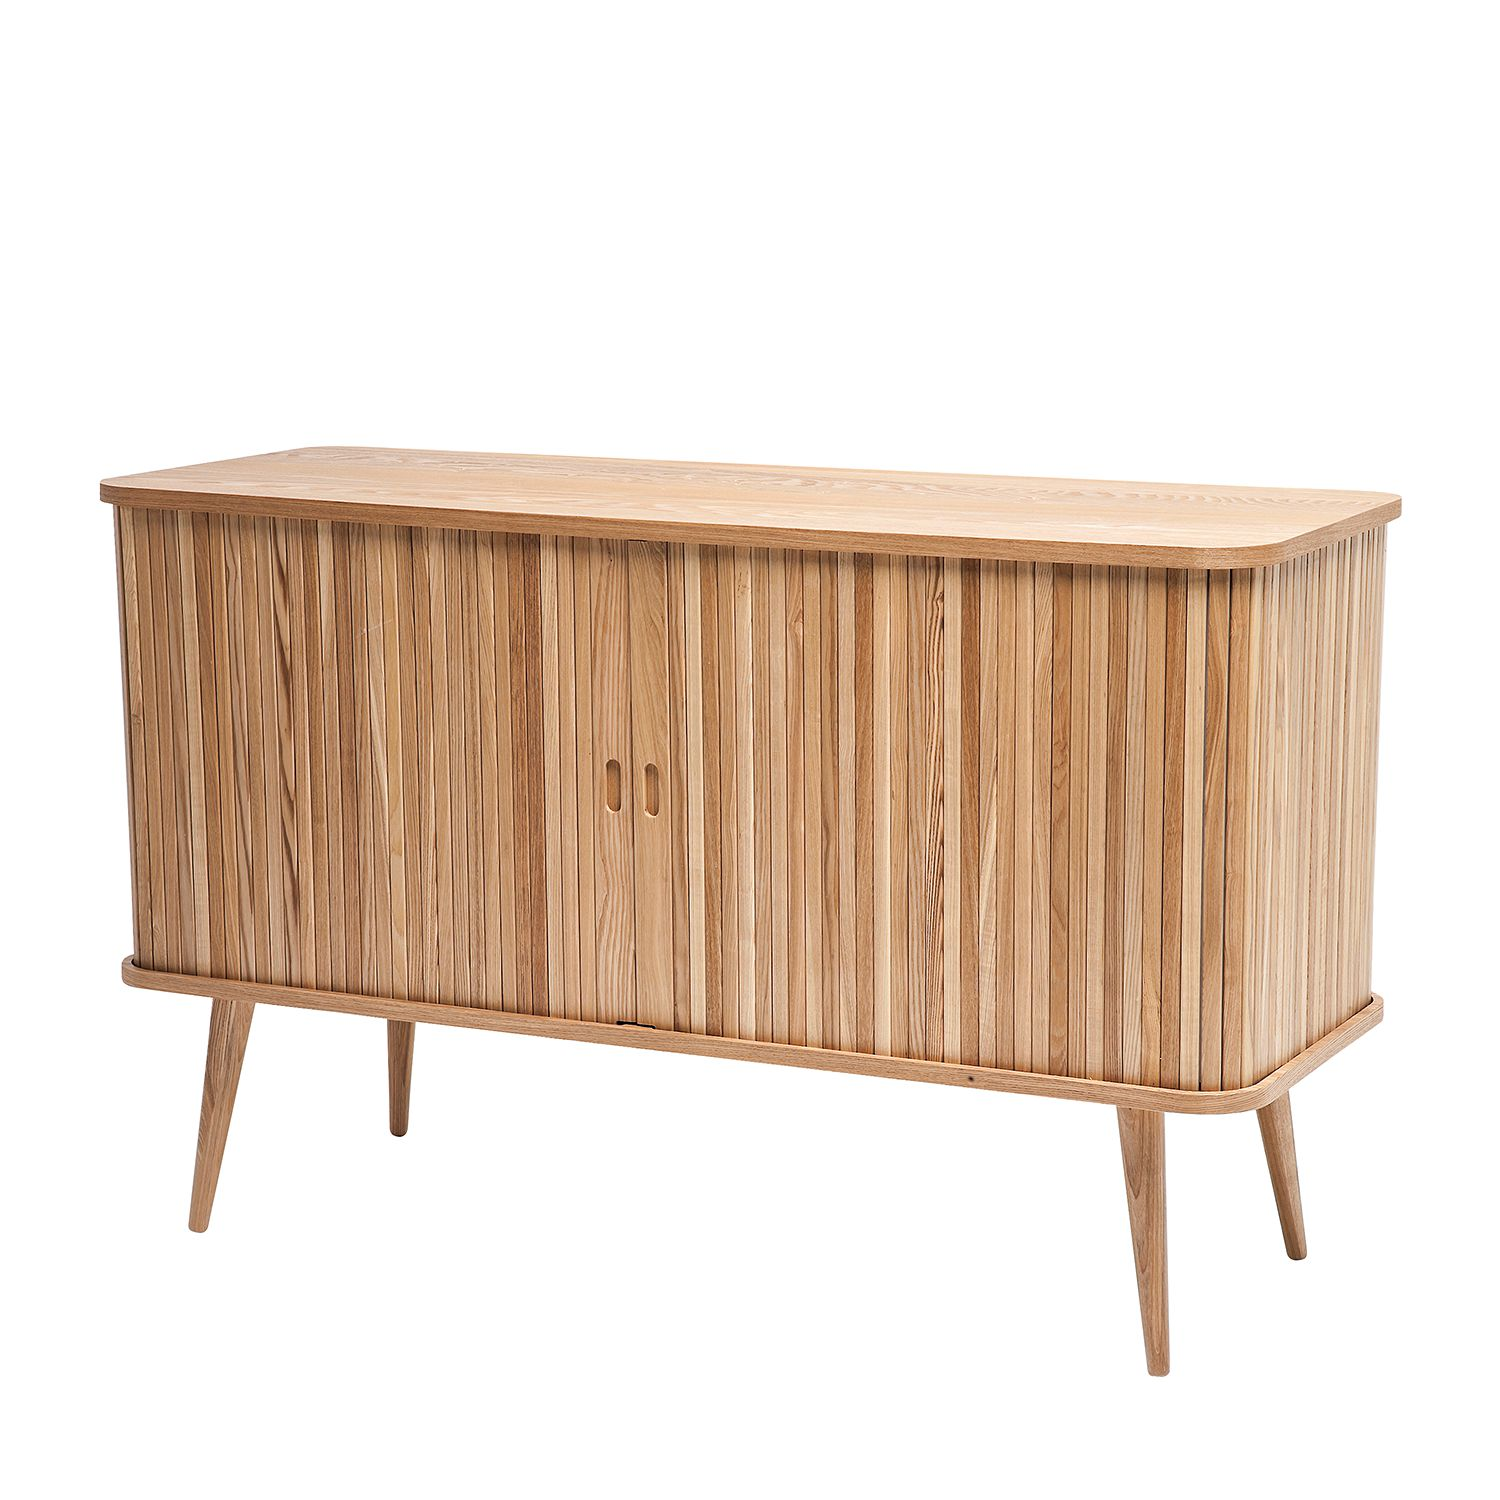 Sideboard Hollola - Esche massiv, Kare Design